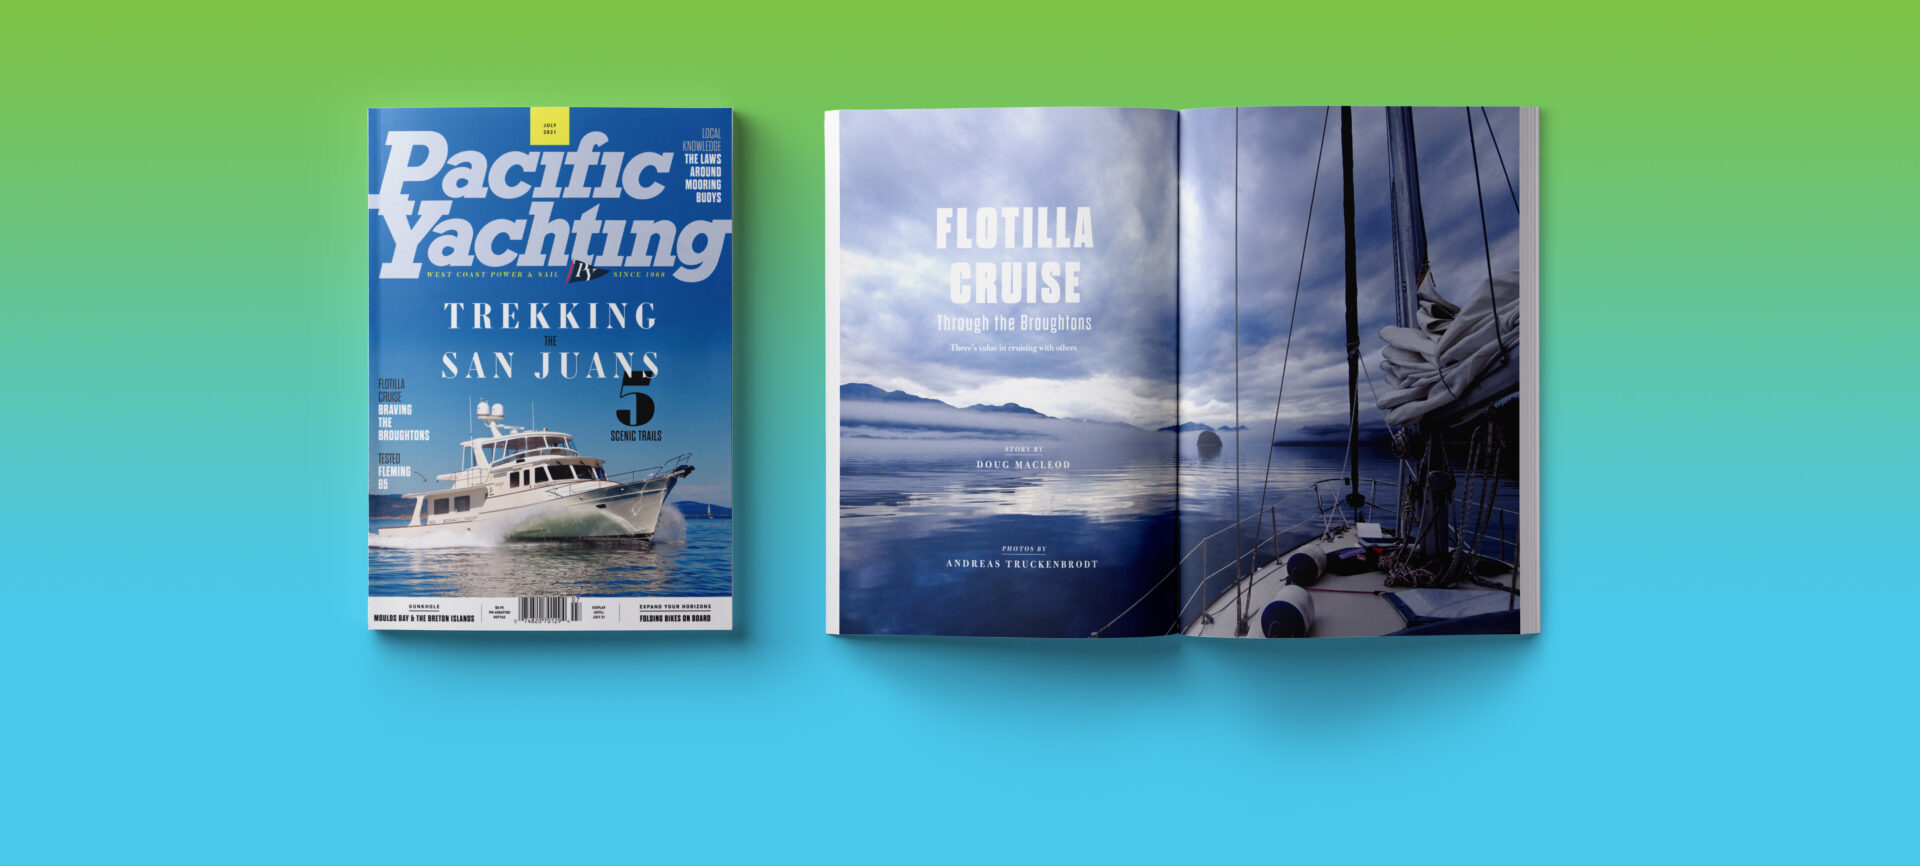 Pacific Yachting July 2021 issue.